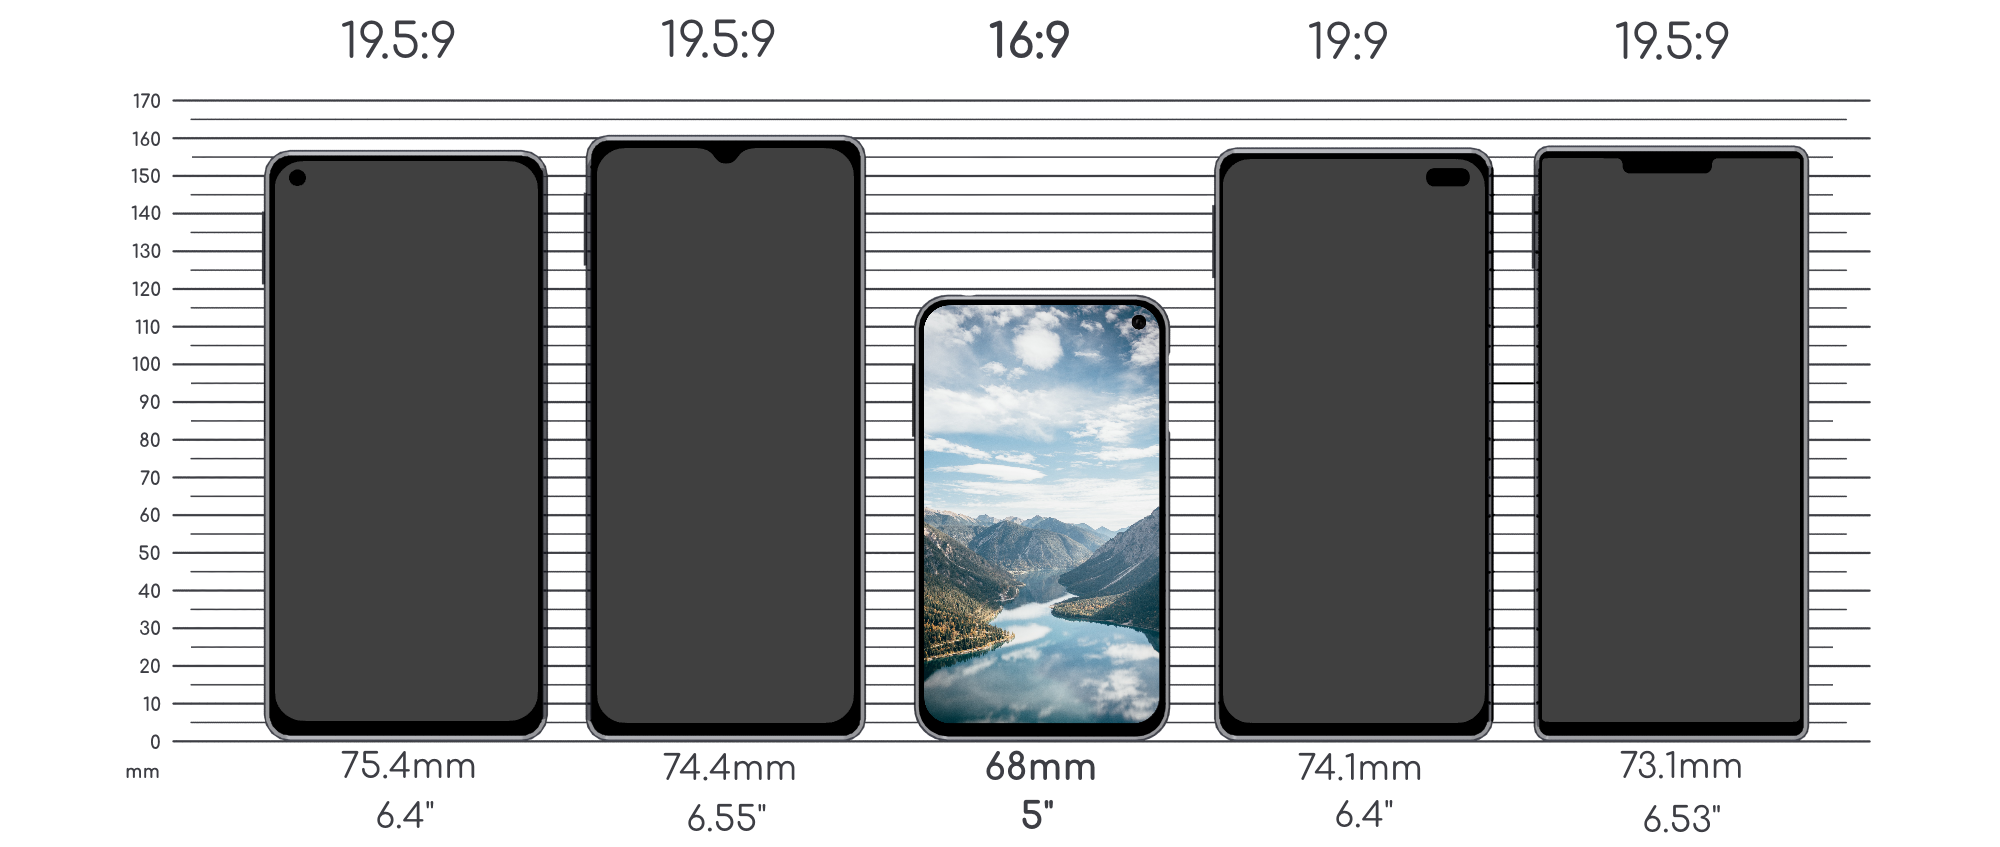 Size comparaison of OneDevice with other mainstream smartphones